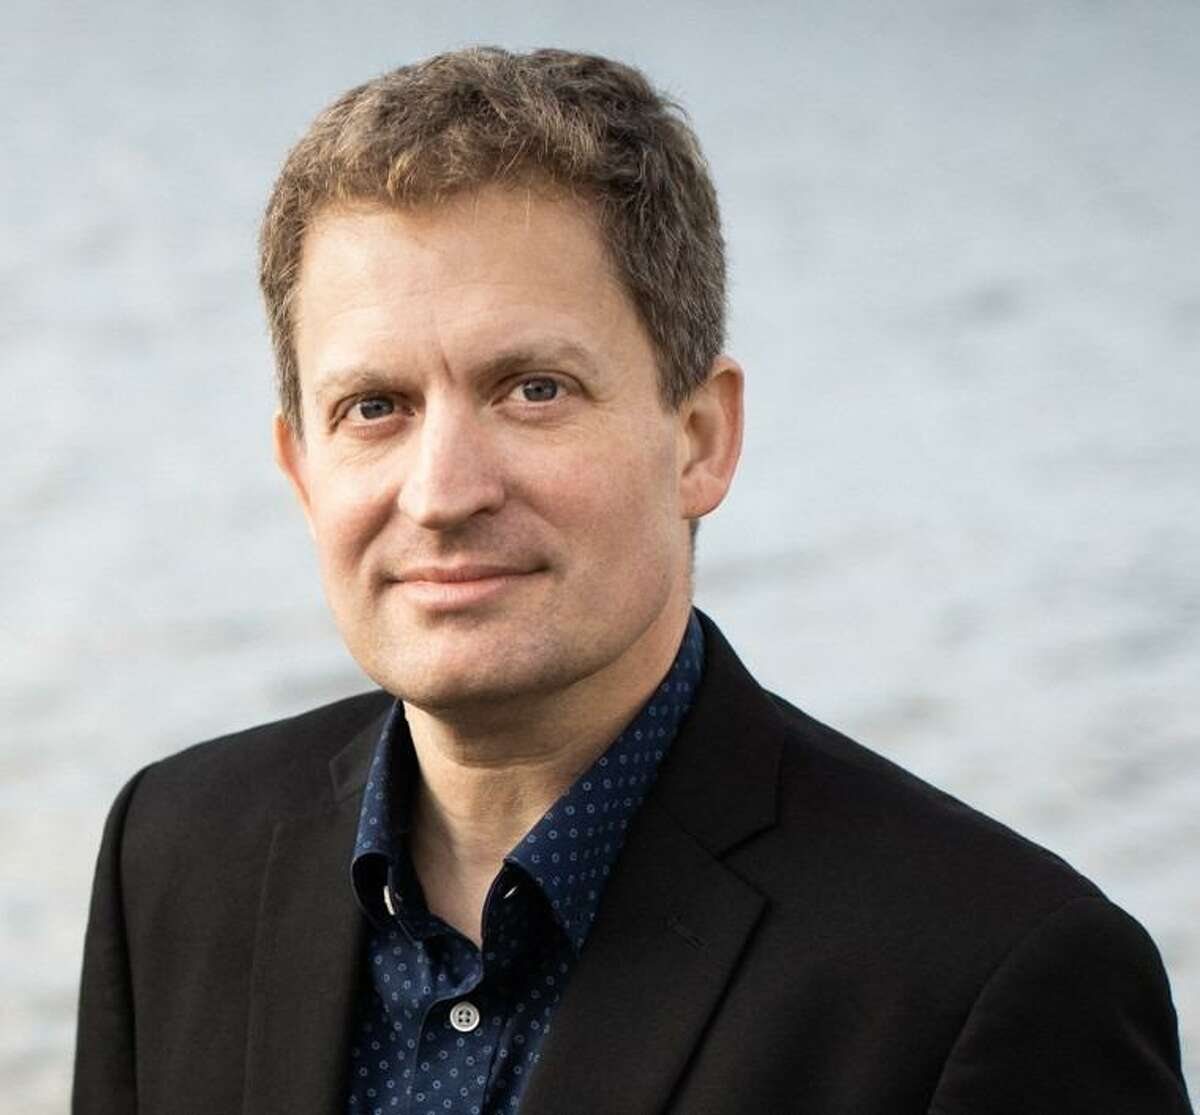 Virtuoso Pianist Andrew Armstrong is doing a New Canaan Chamber Music concert on Saturday, May 22, 2021, at the First Presbyterian Church of New Canaan.